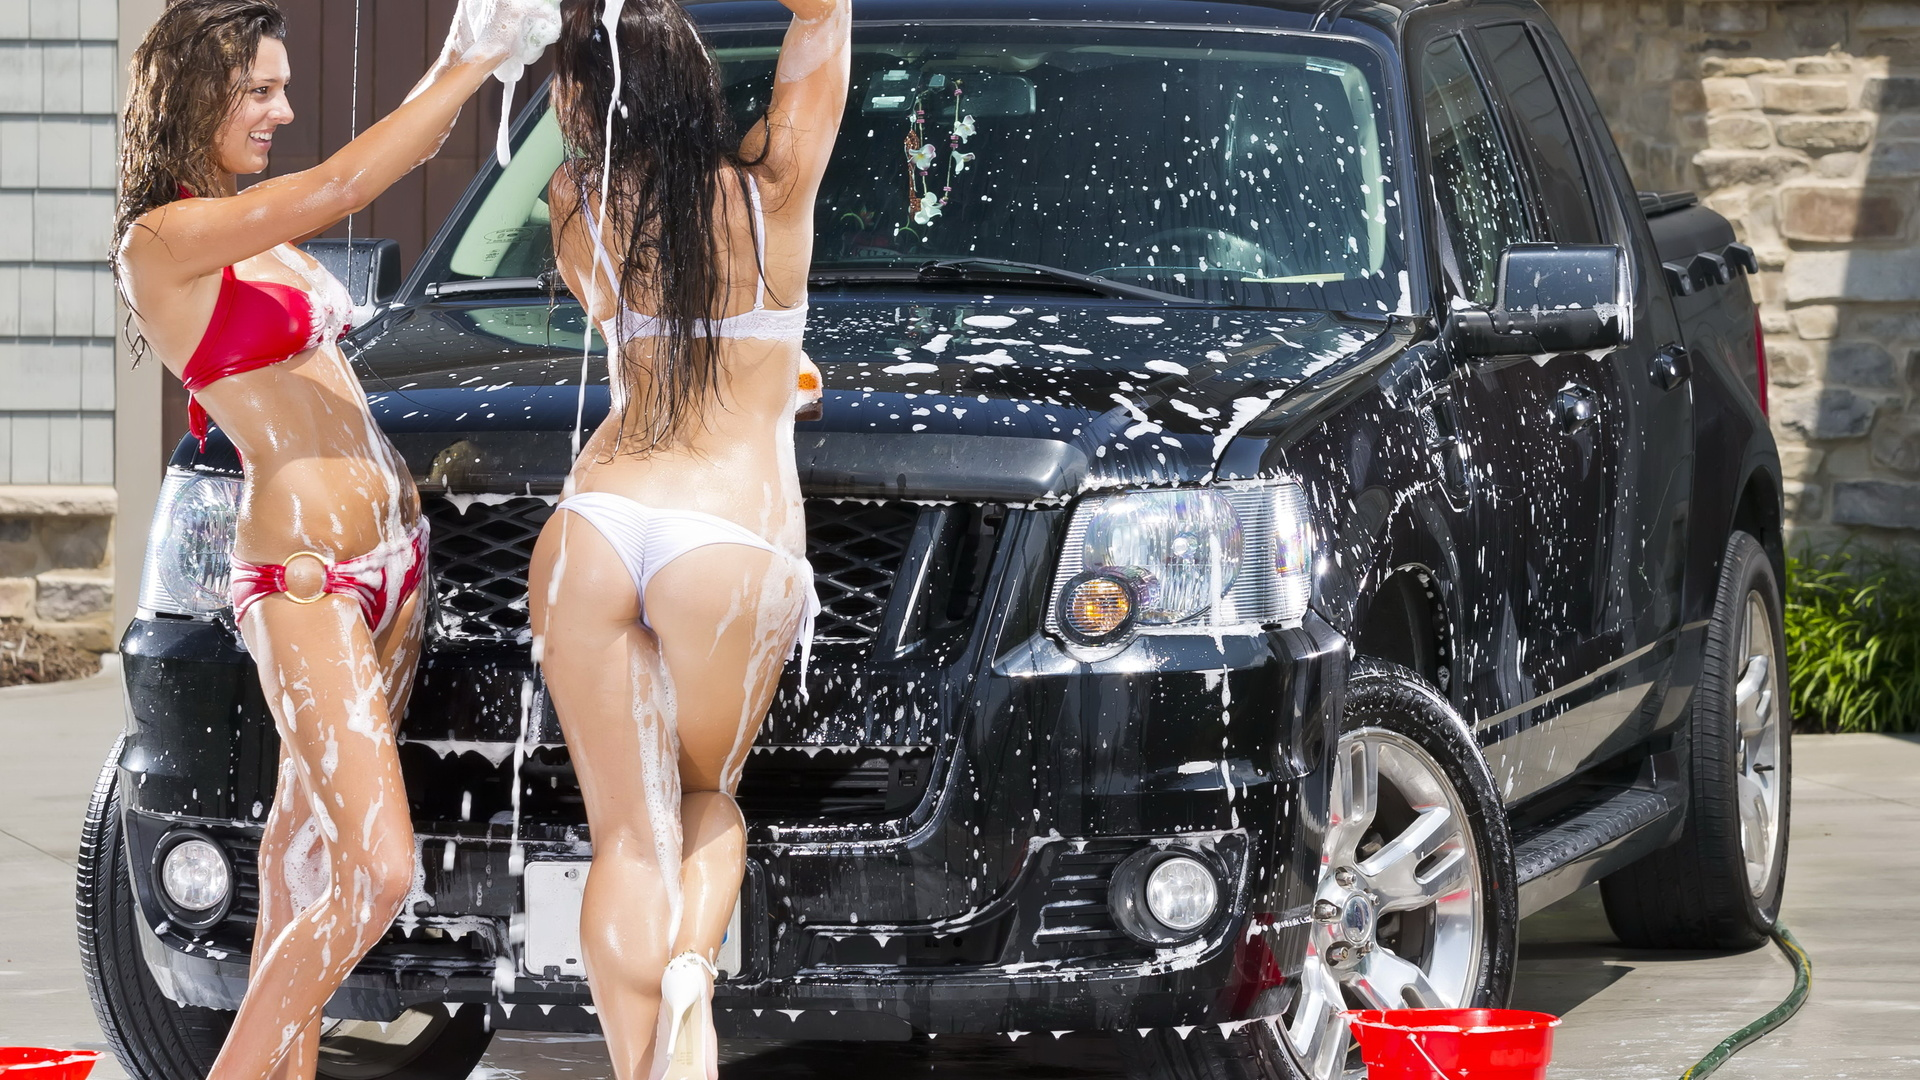 Hot girls wash cars, university of miami nude pictures